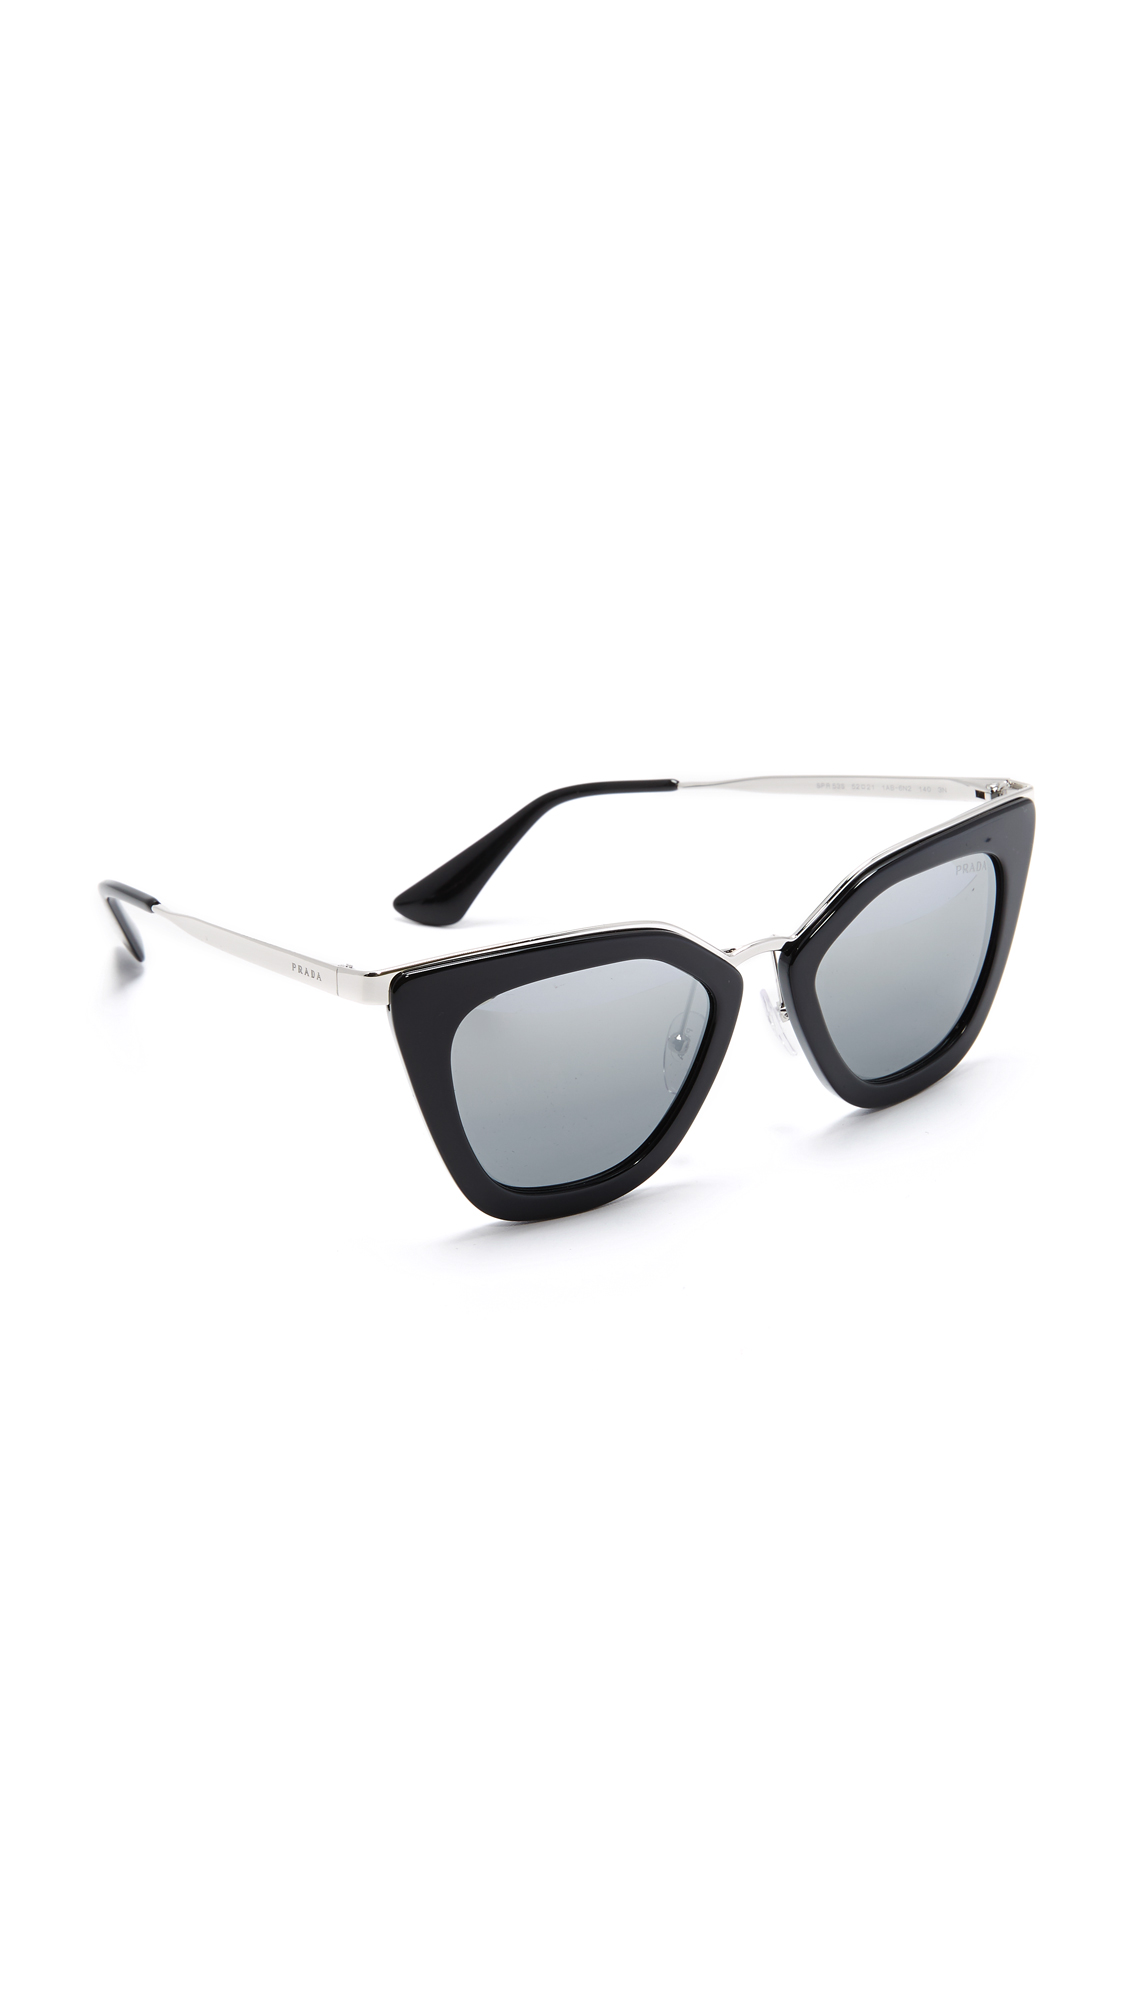 Prada Metal Bridge Mirrored Sunglasses - Black/Silver at Shopbop